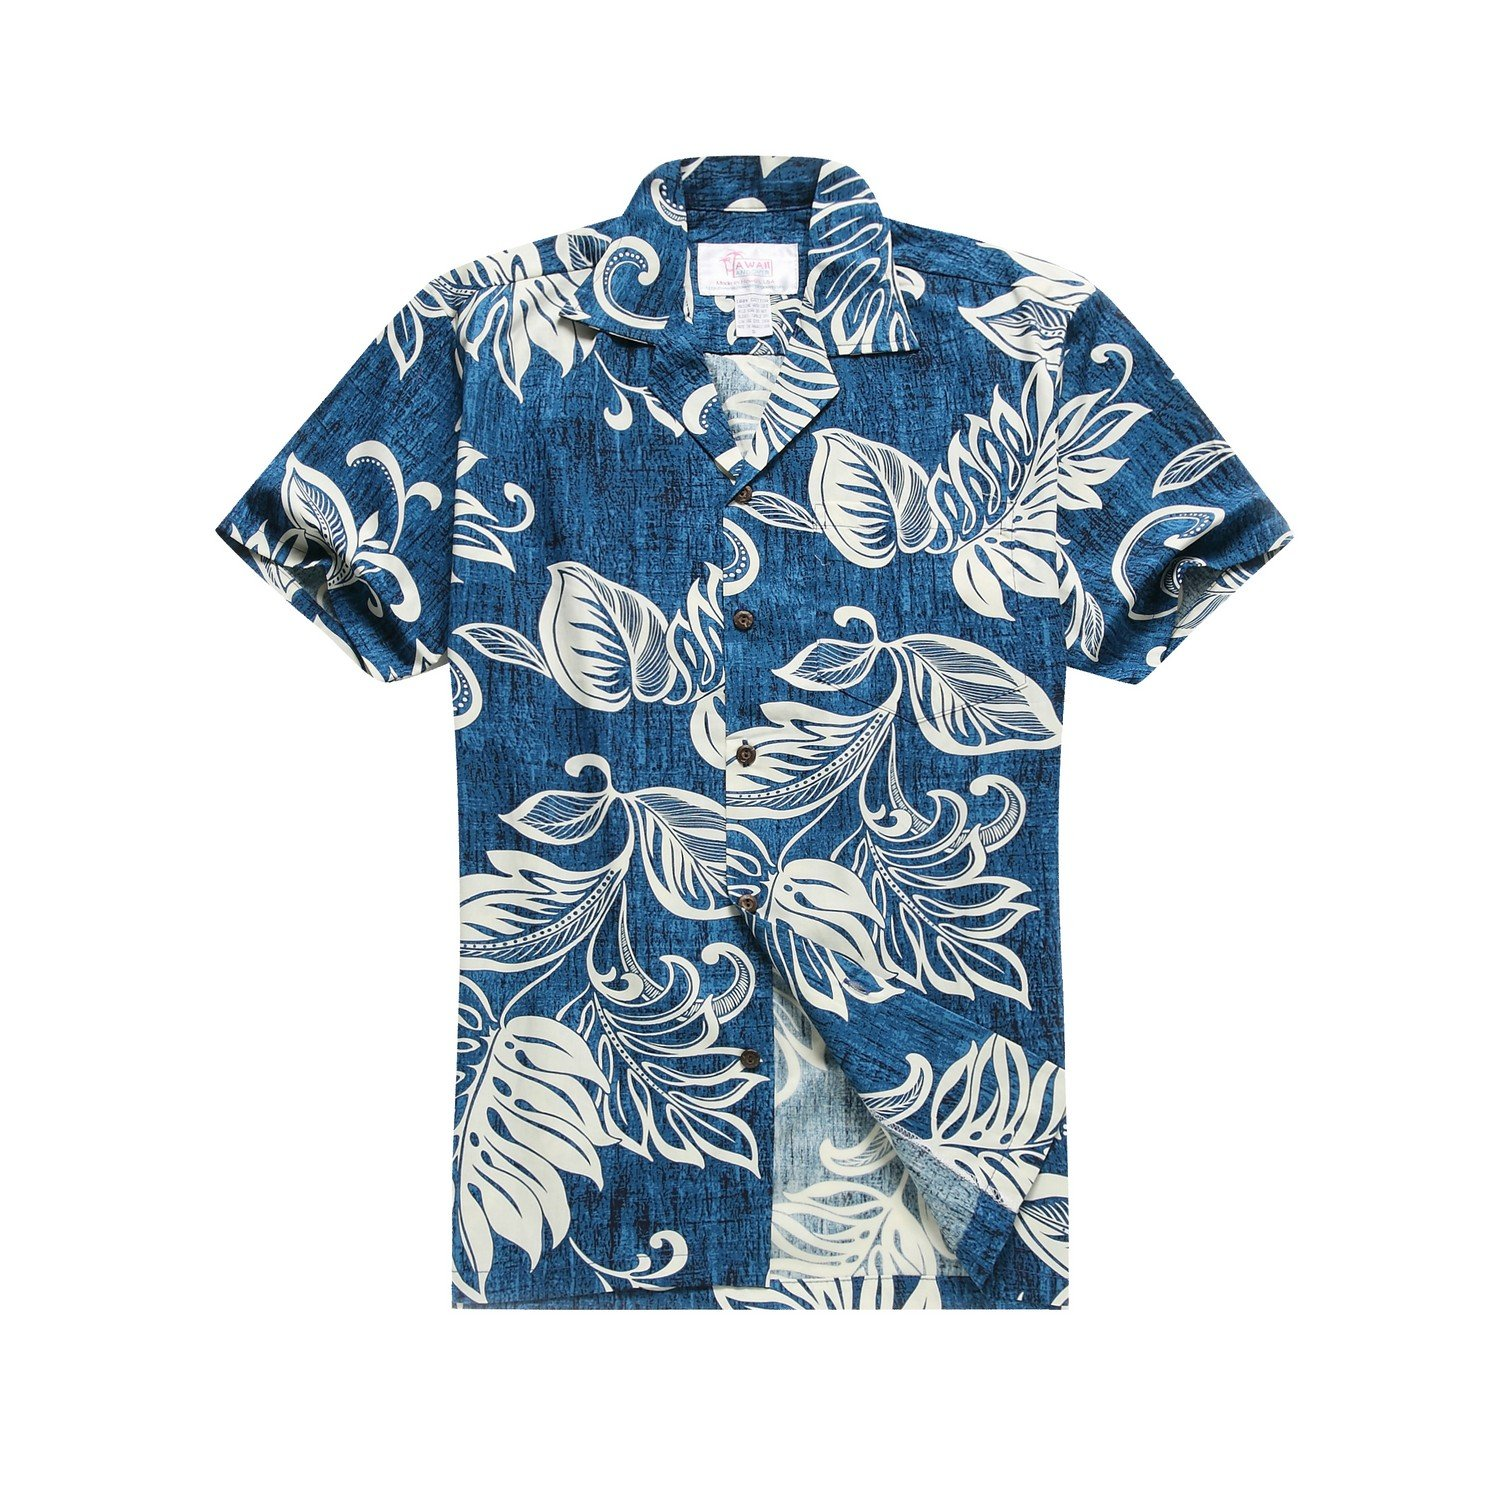 053be1be Miss Hawaii Already? Keep the Hawaii Hangover going! Made in Hawaii, 100%  Cotton Pre-Shrunk, matching pocket on the left chest